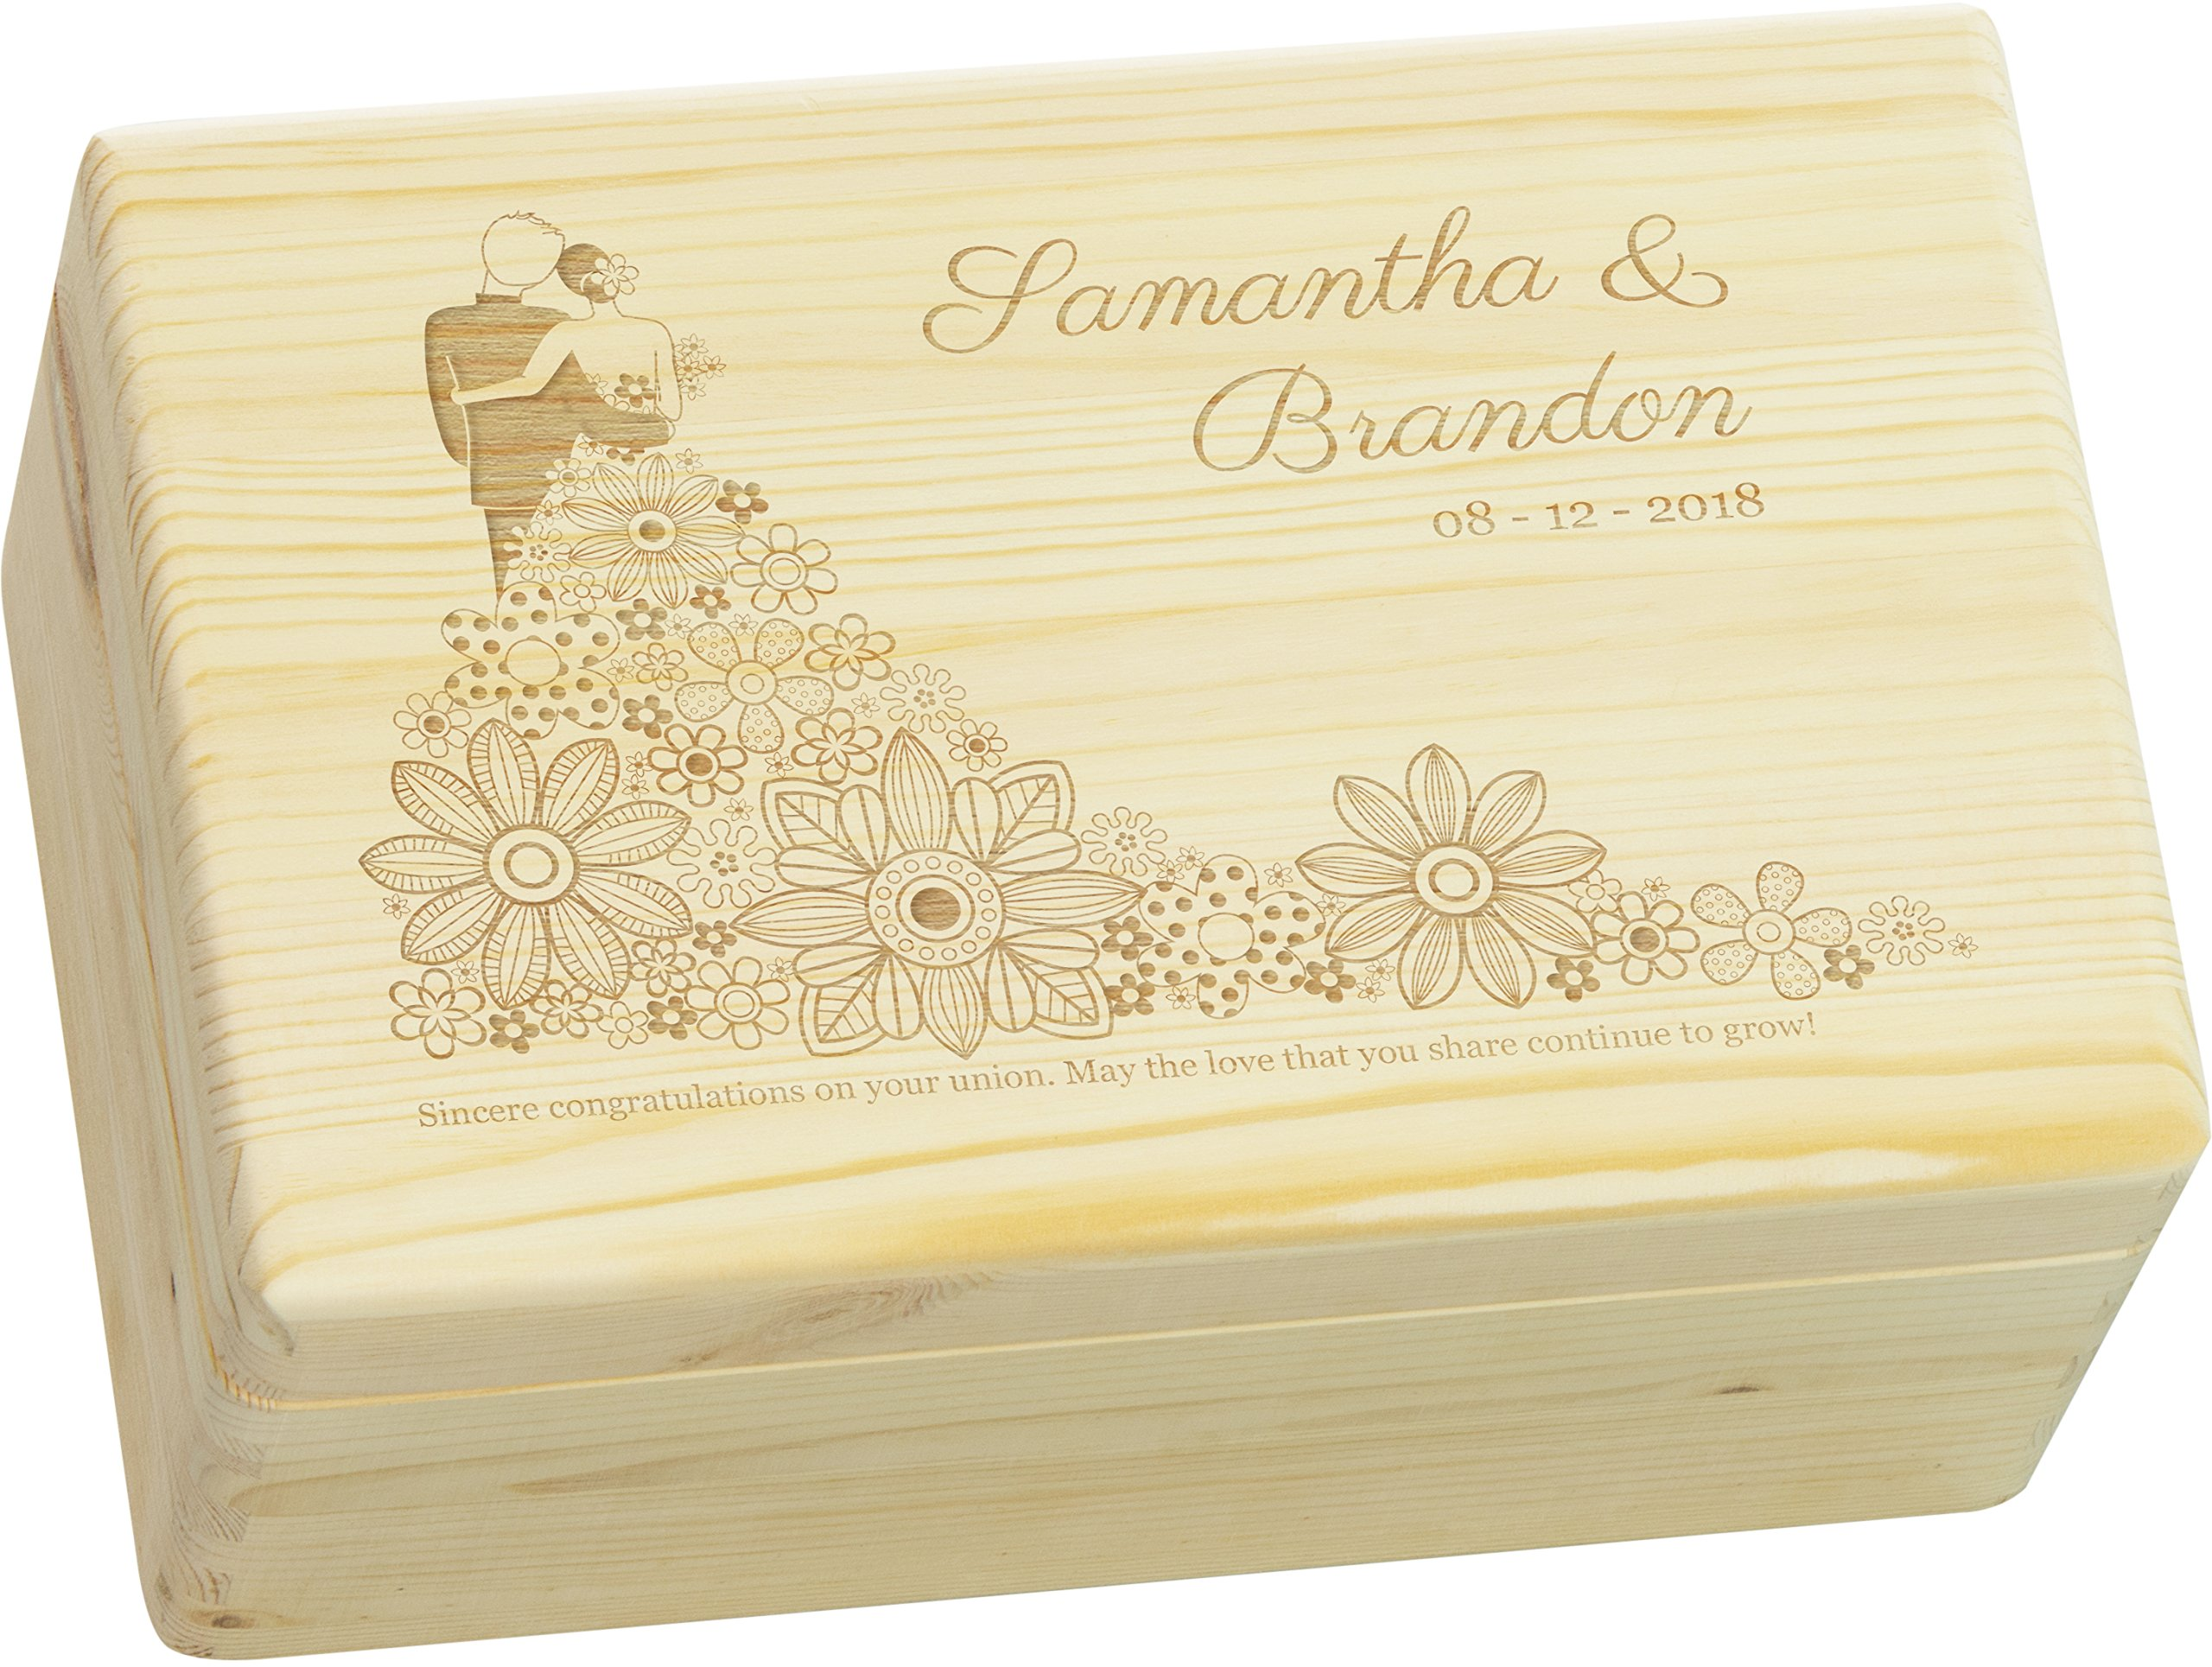 LAUBLUST Engraved Wooden Memory Box - Size L, 12x8x6in - ❤️ Personalized ❤️ Gift Box for Wedding - Floral Bridal Gown | Natural Wood - Made in Germany